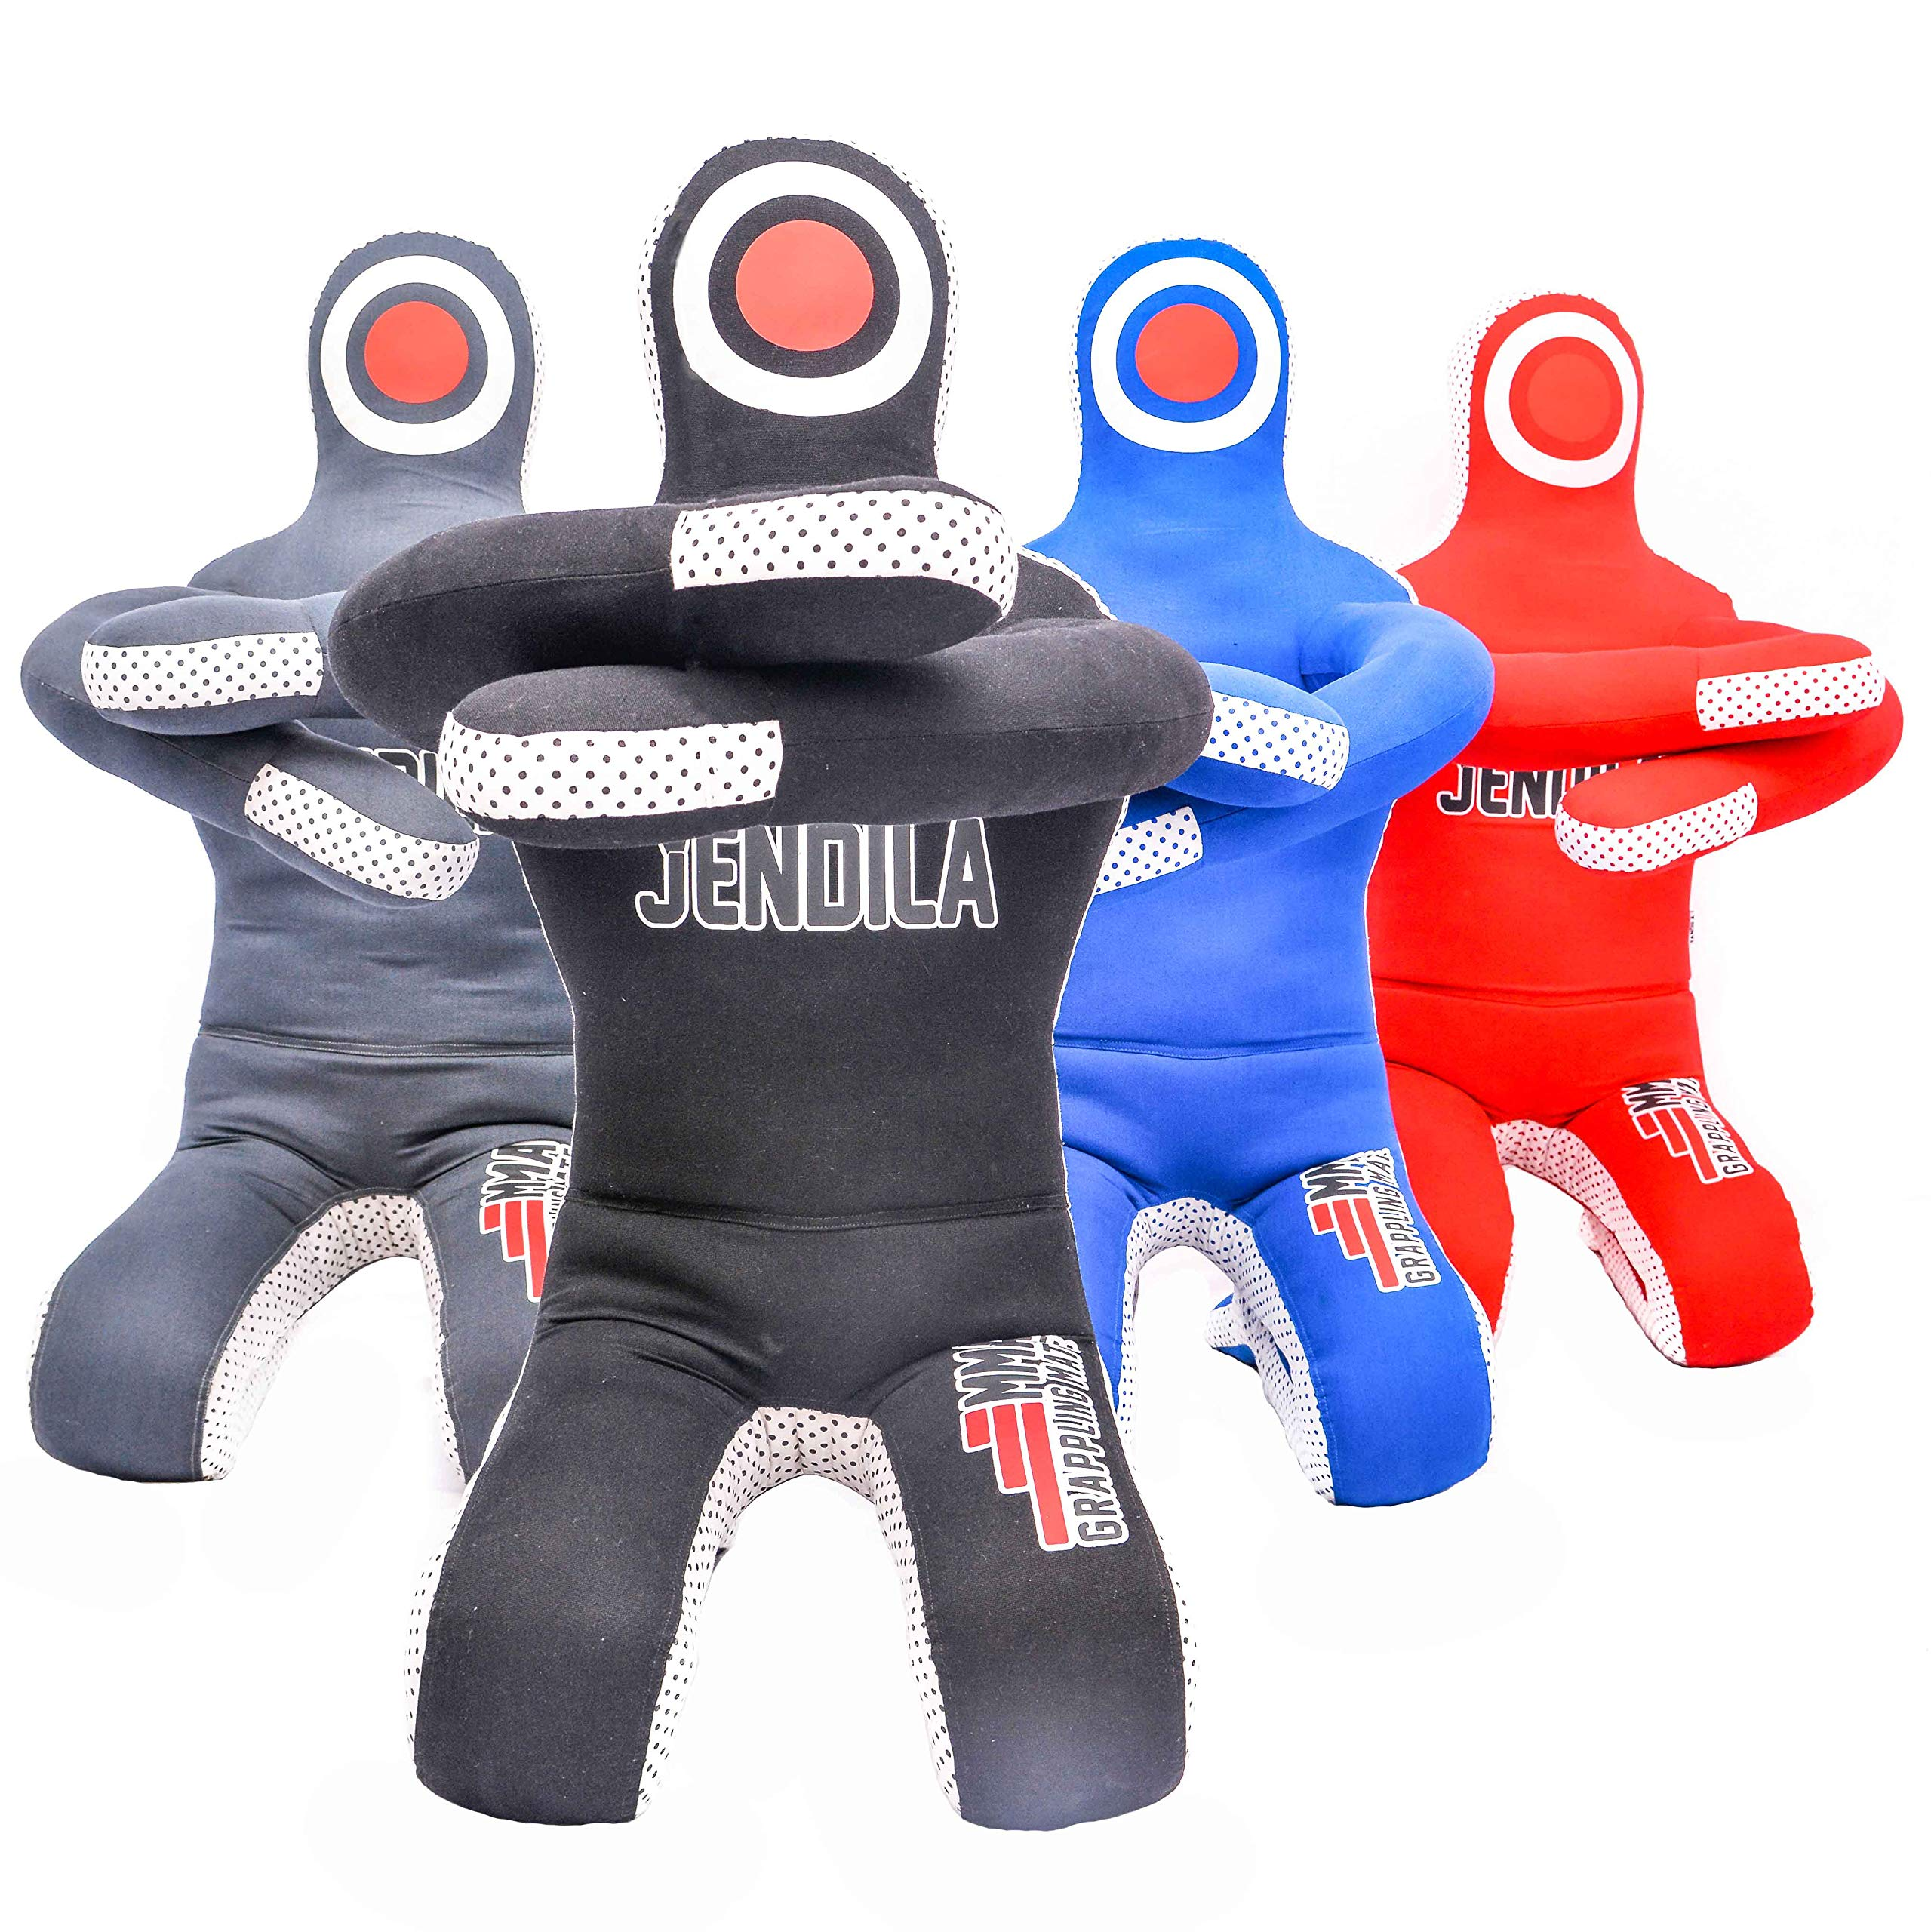 Grappling Dummy MMA Jiu Jitsu - Grappling Wrestling Dummy - Made from Durable Canvas Fabrics - MMA Dummy for Multiple Drills UNFILLED by Jendila